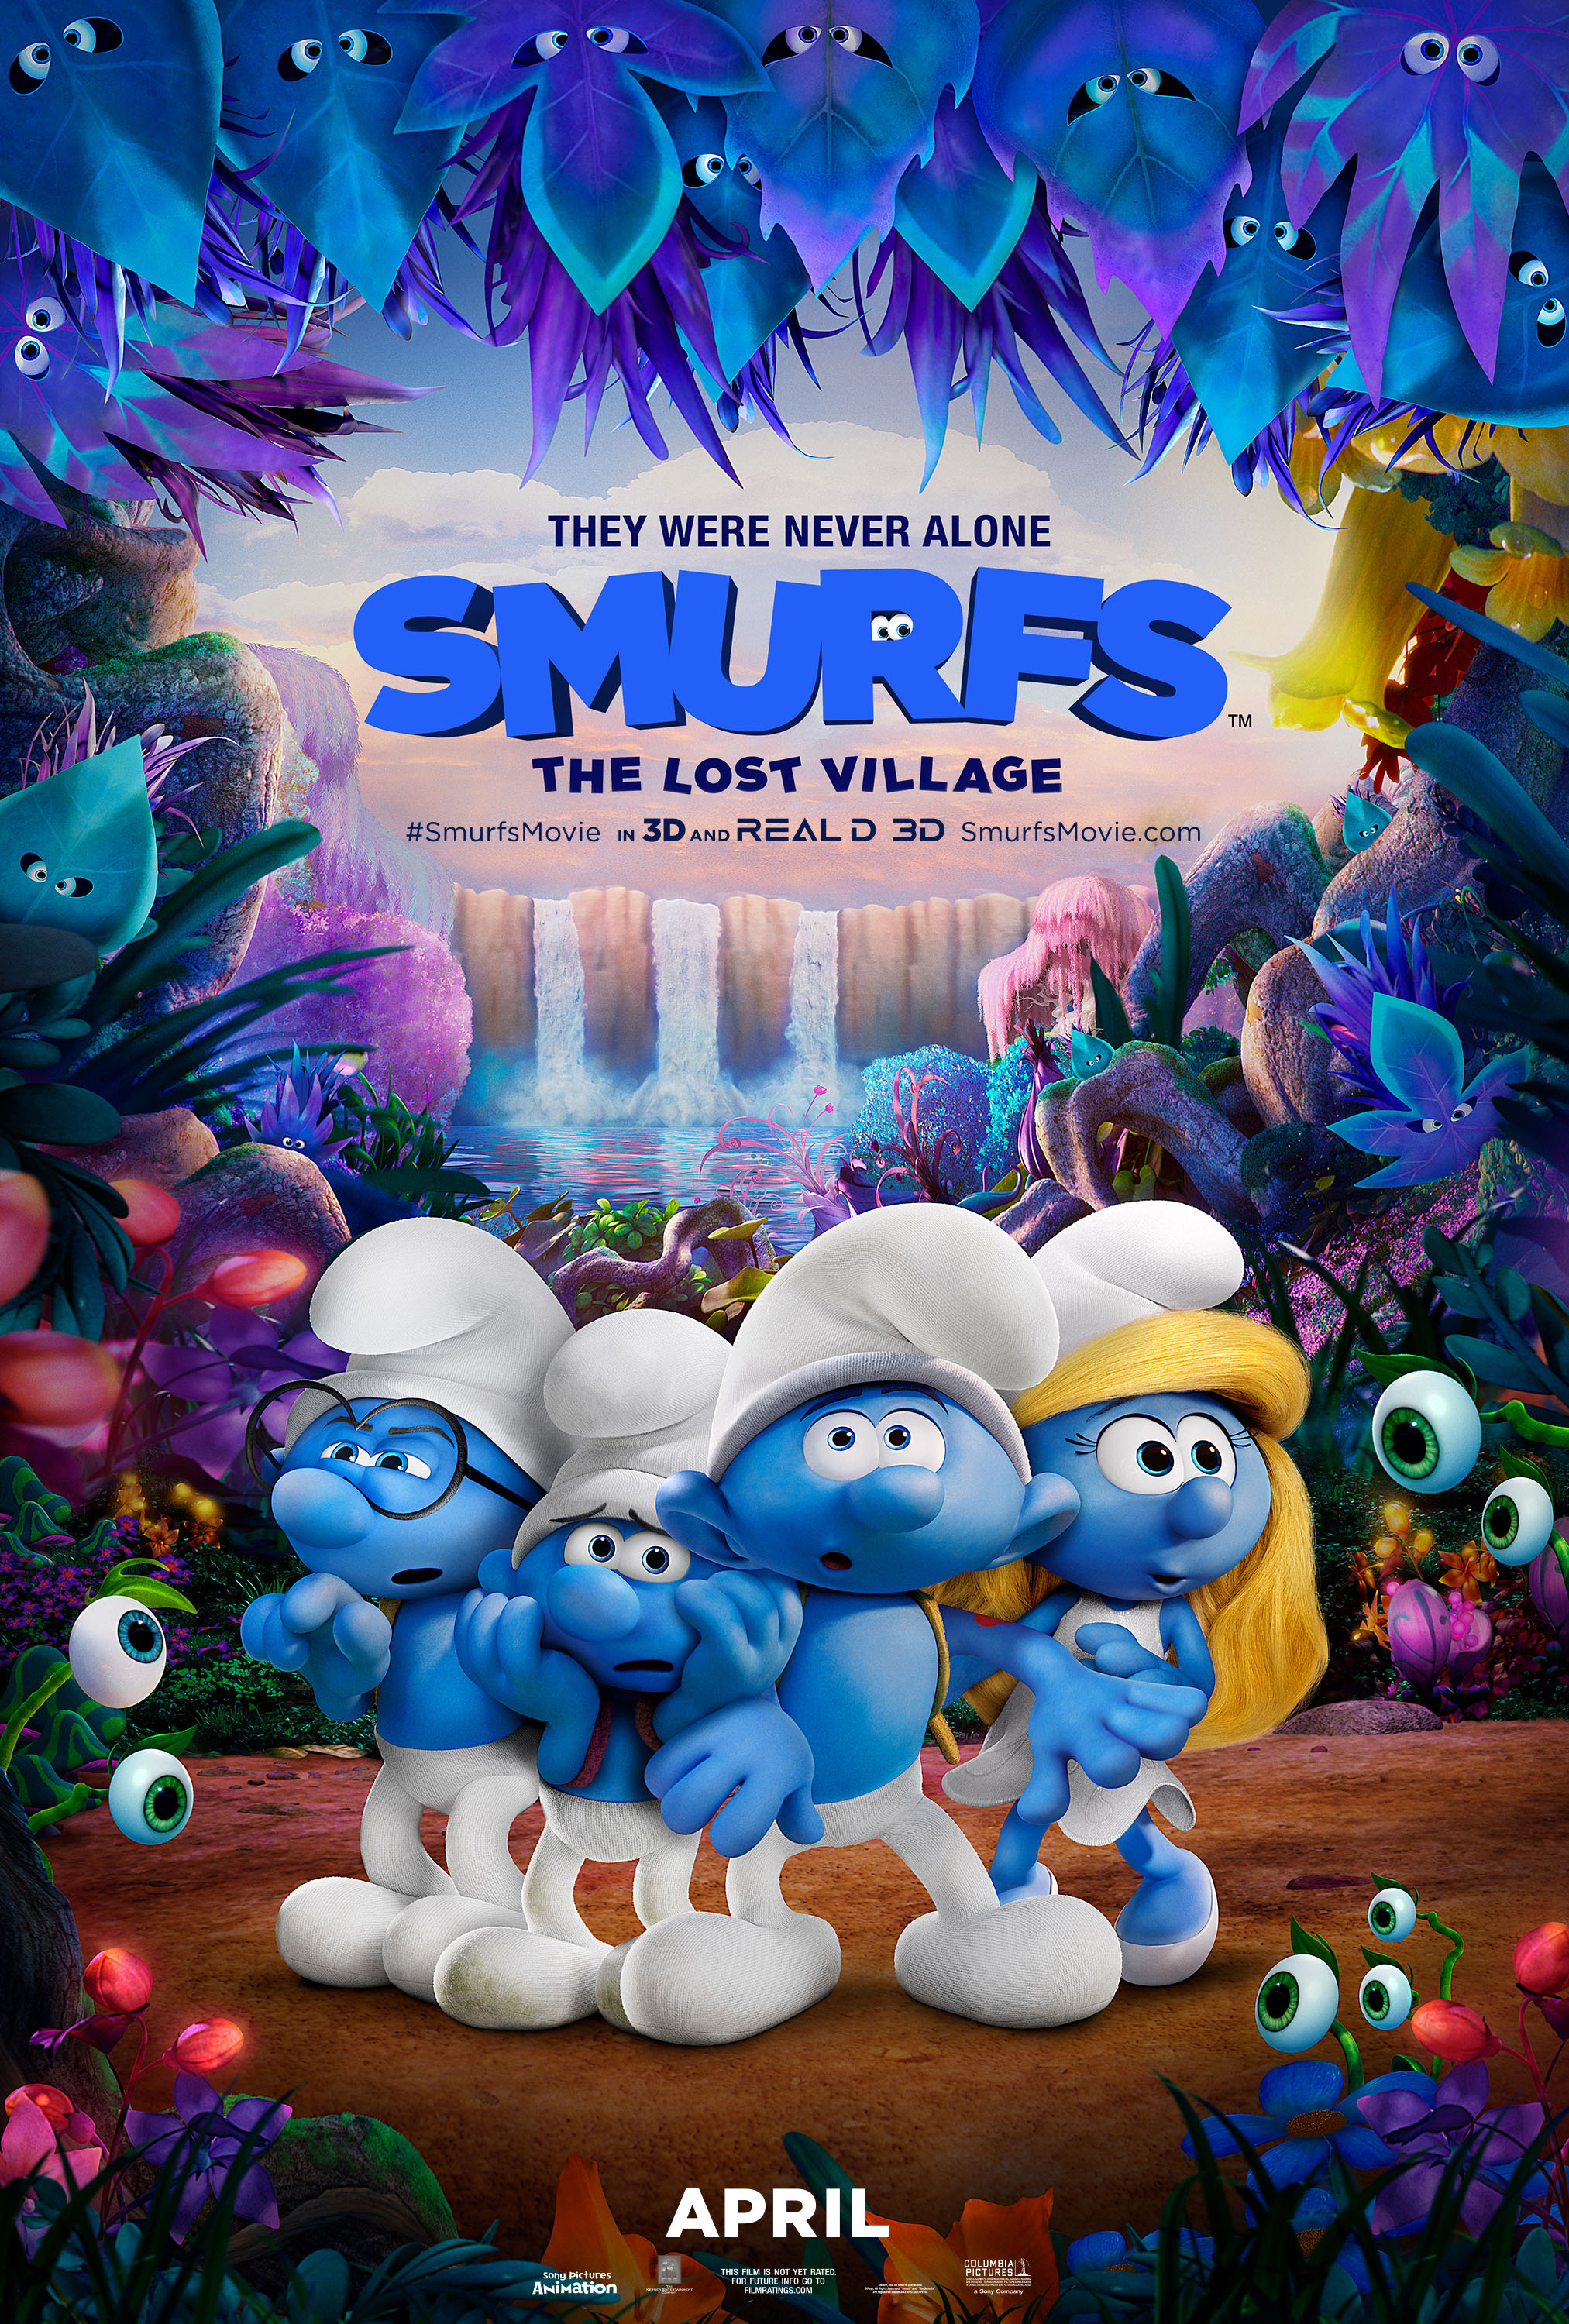 @suzysvista's cover photo for 'Smurfs: The Lost Village Movie'